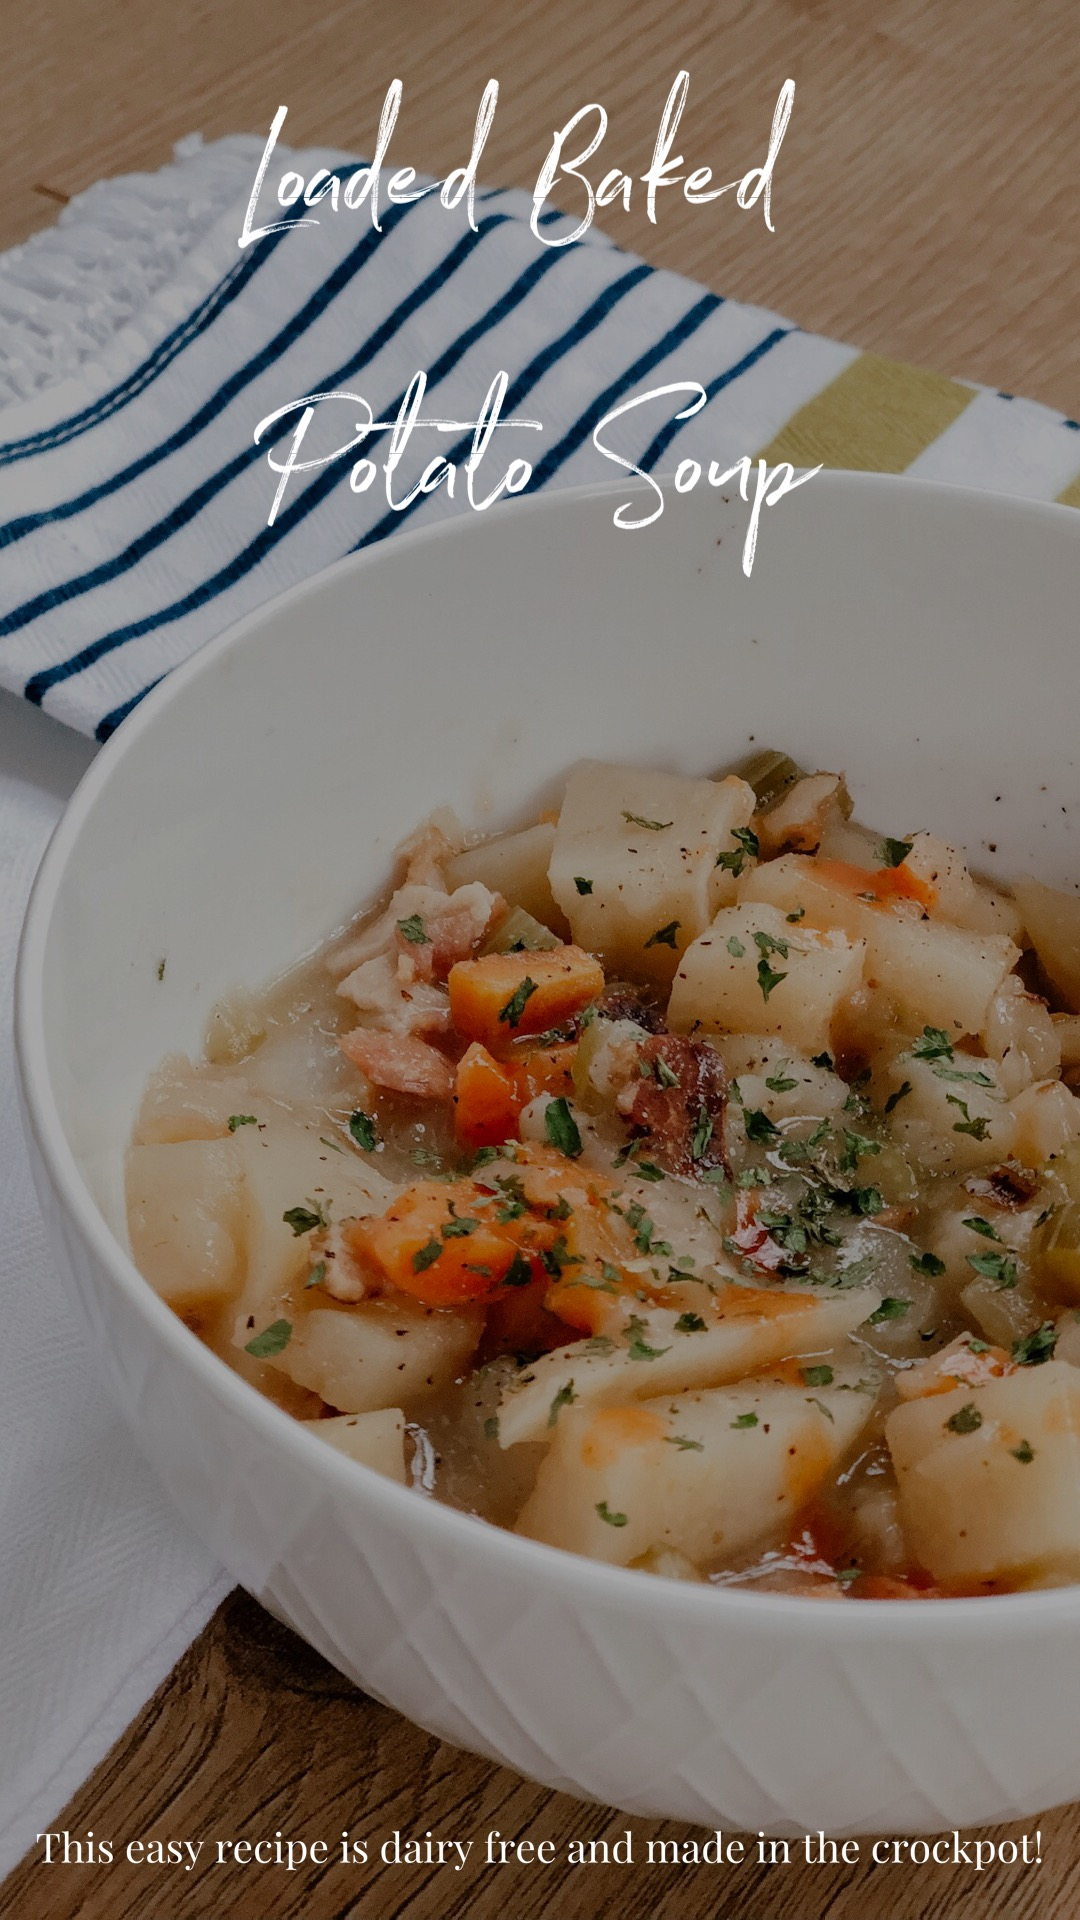 Loaded Baked Potato Soup Recipe - potatoes, bacon, carrots, celery, onions cooked in a bowl